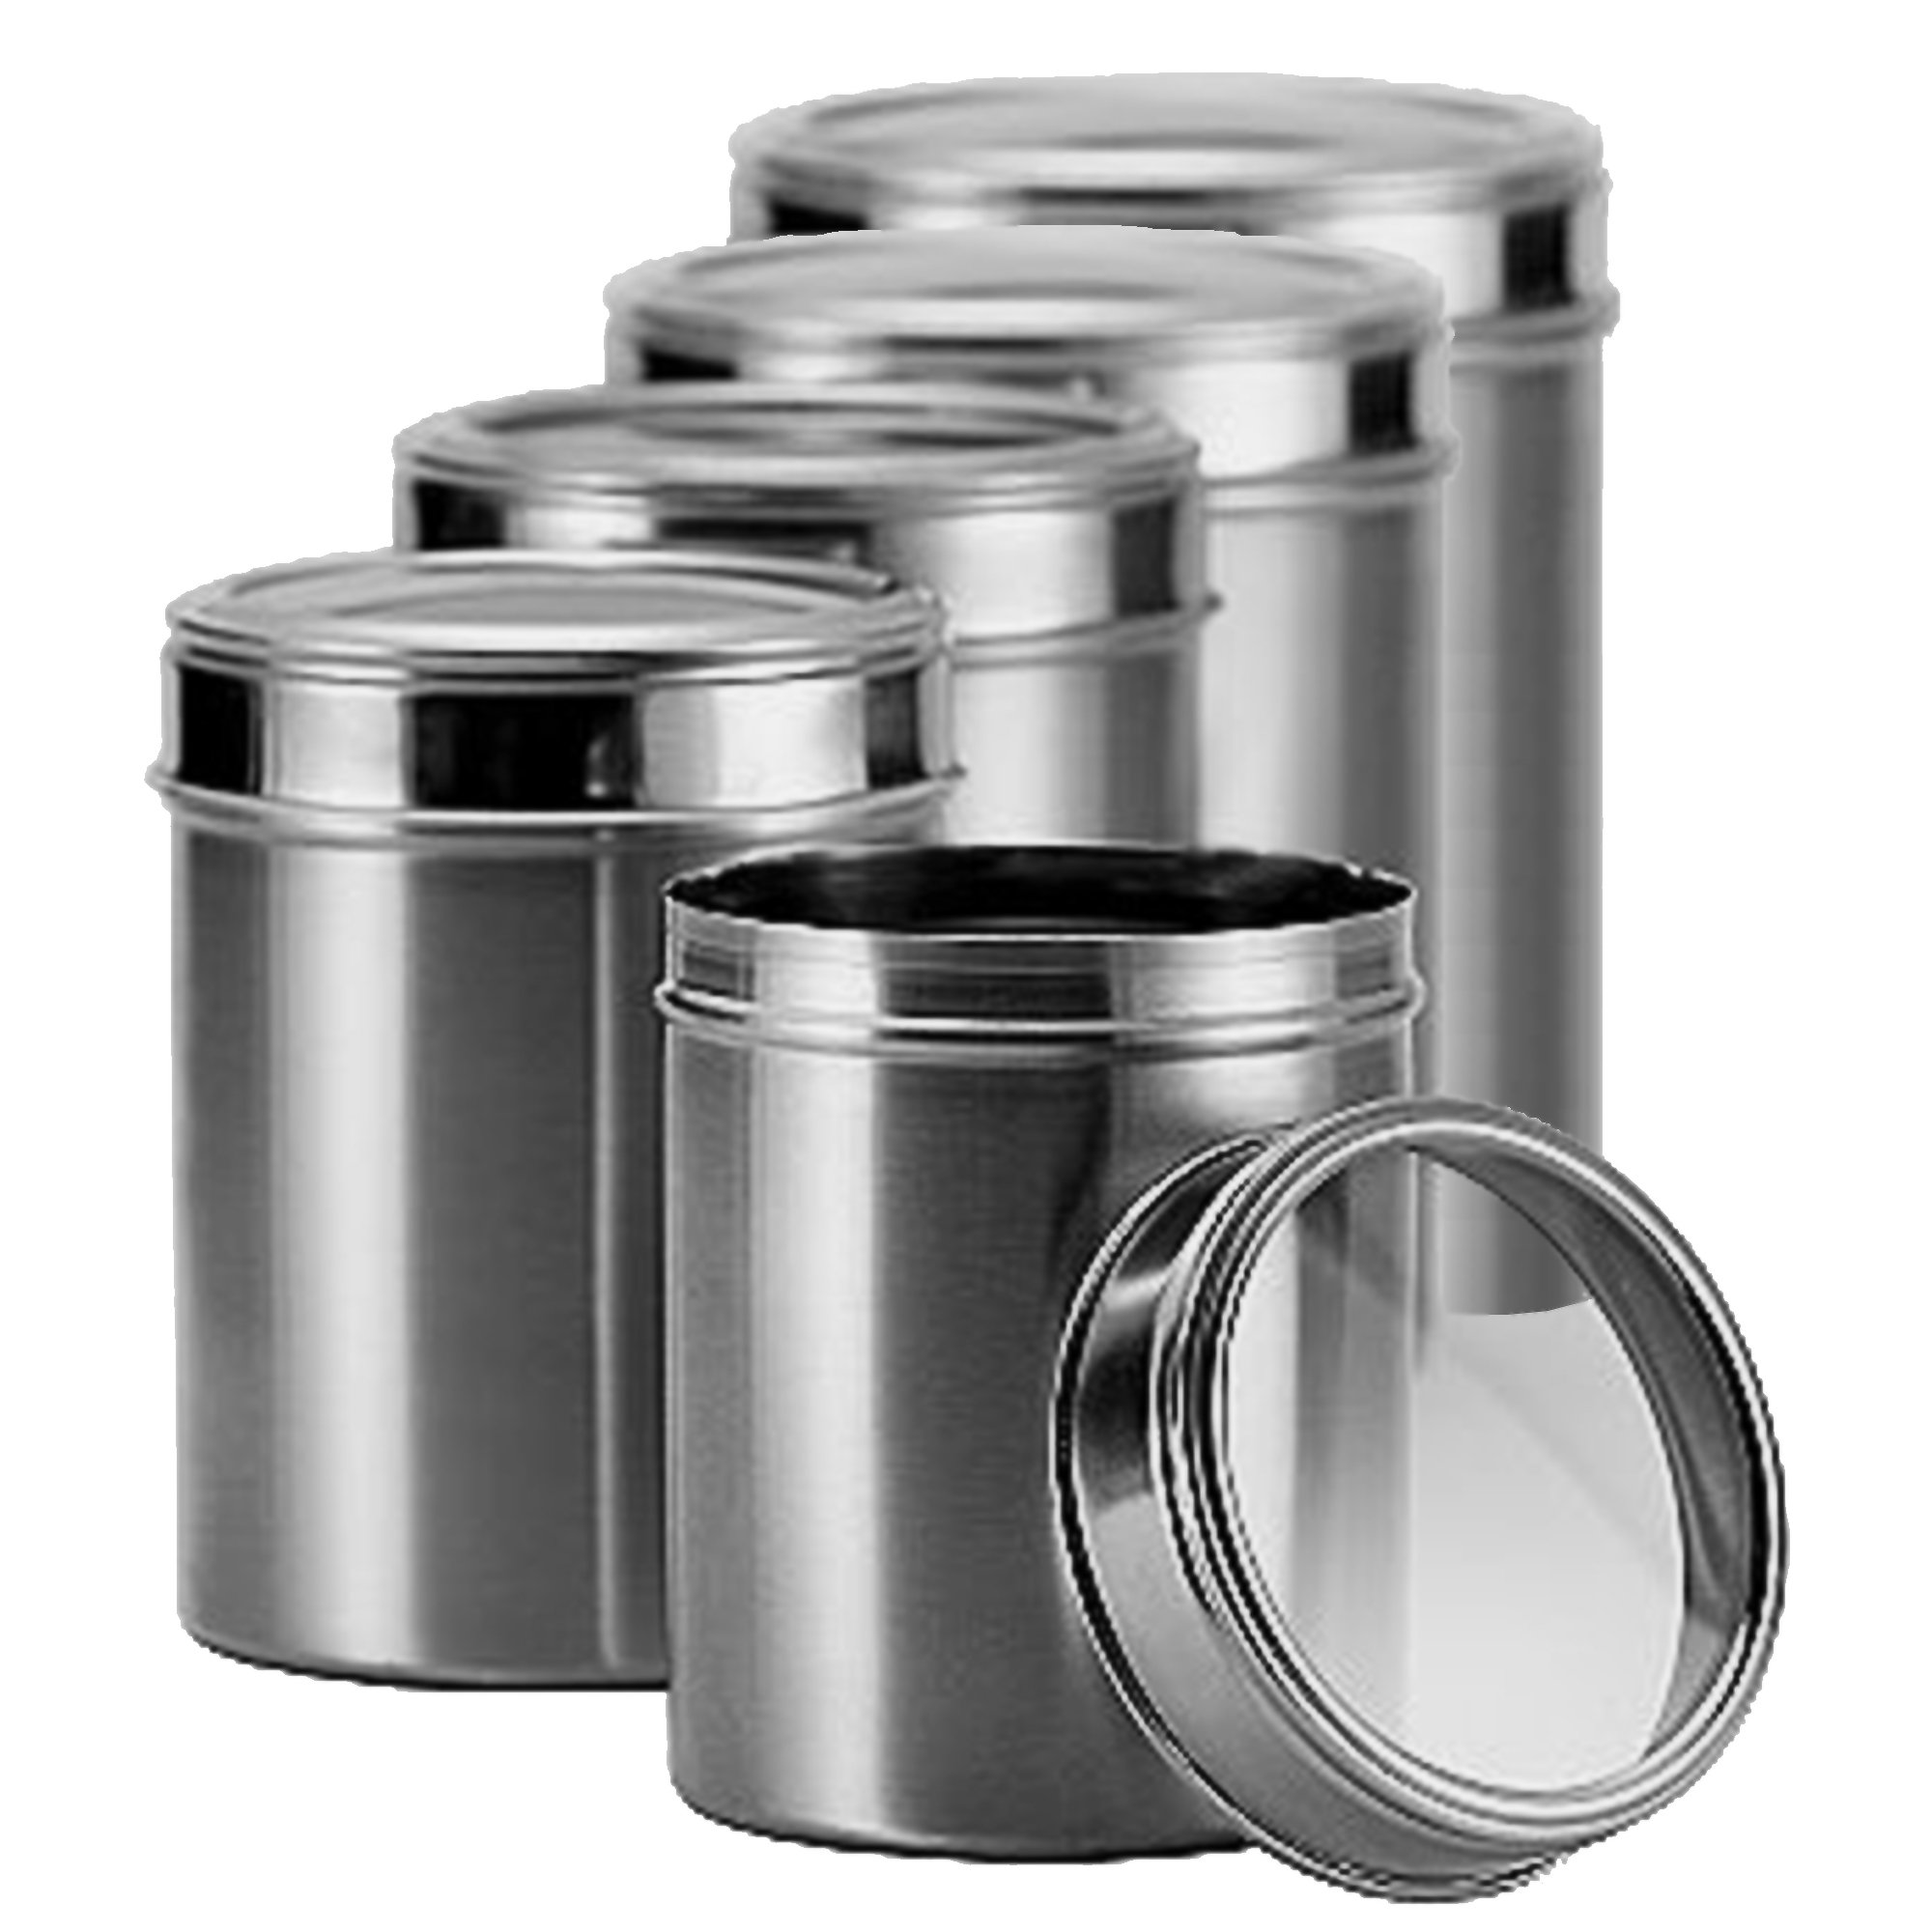 Kitchen Set Stainless Steel Murah: Matbah Stainless Steel 5-Piece Canister Set With Clear Lid